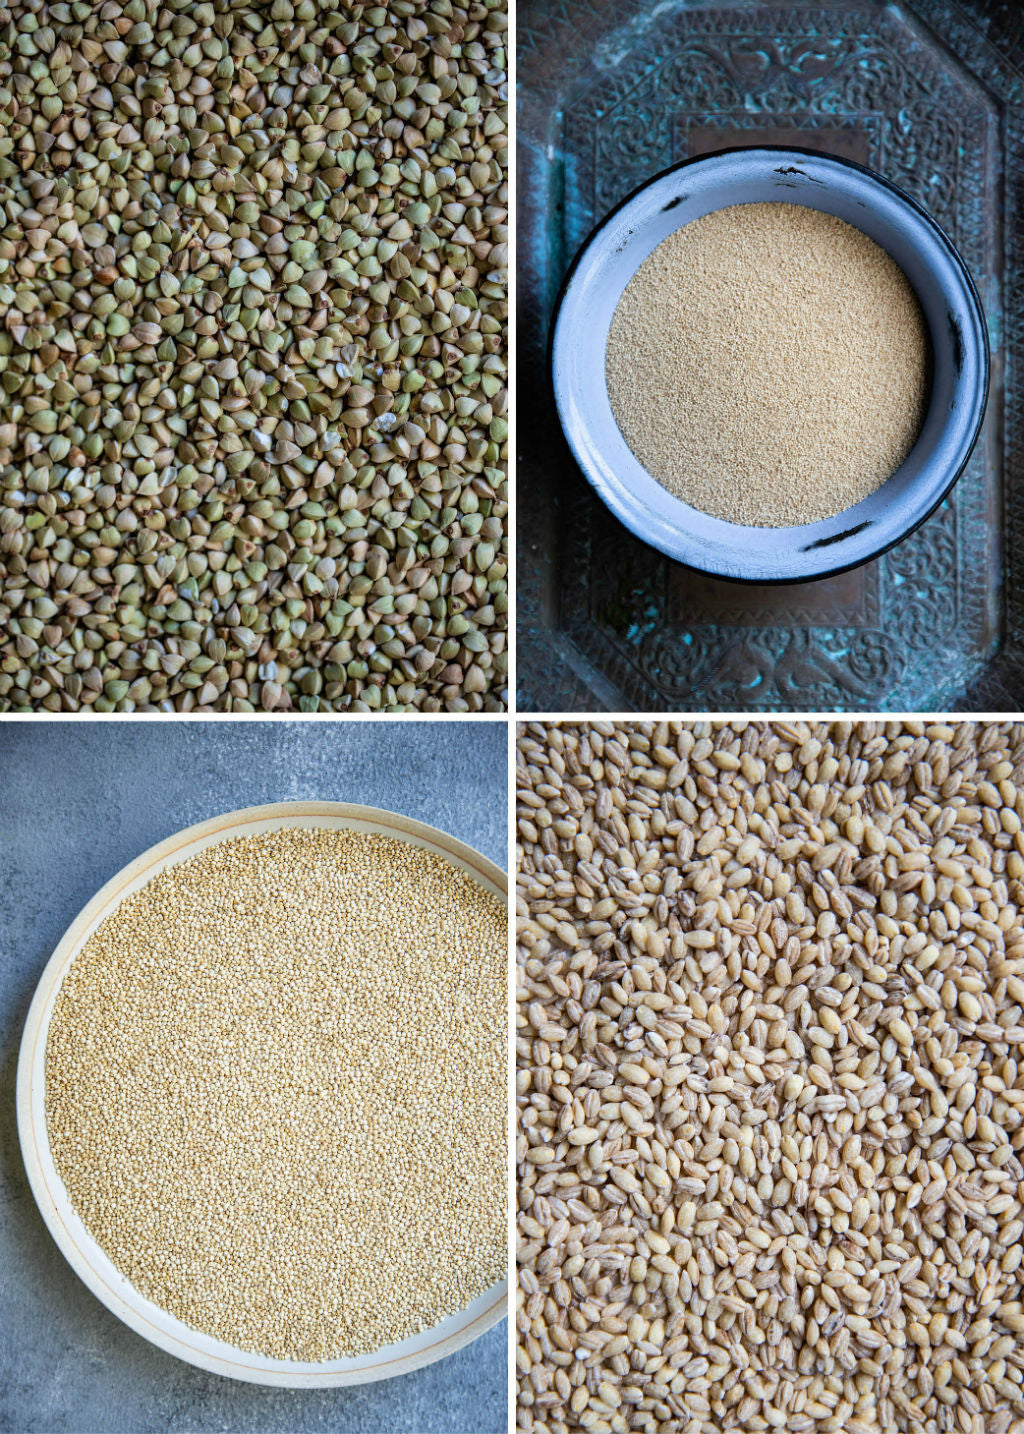 guide to grains by harris farm markets